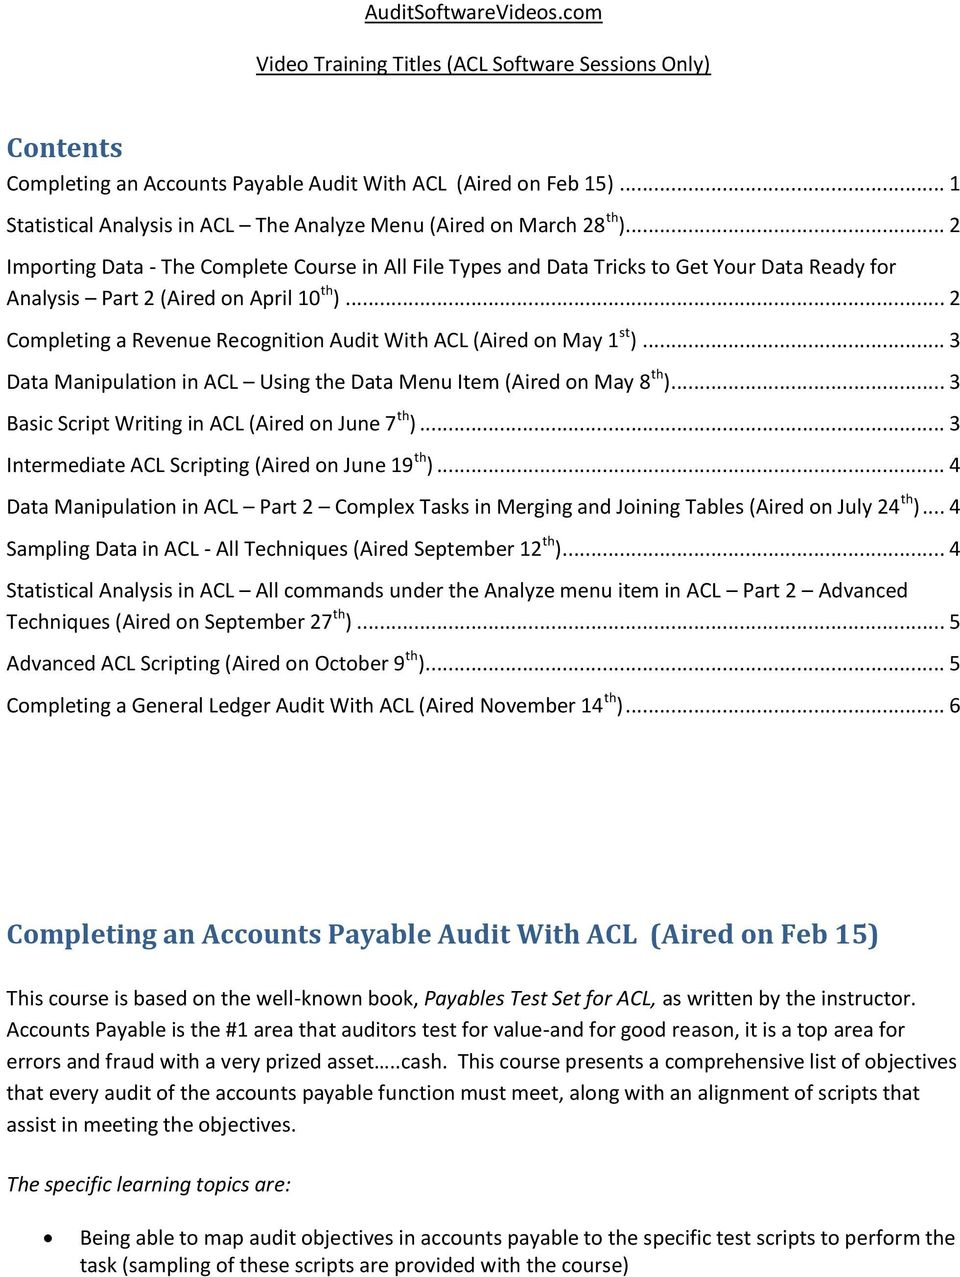 Completing an Accounts Payable Audit With ACL (Aired on Feb